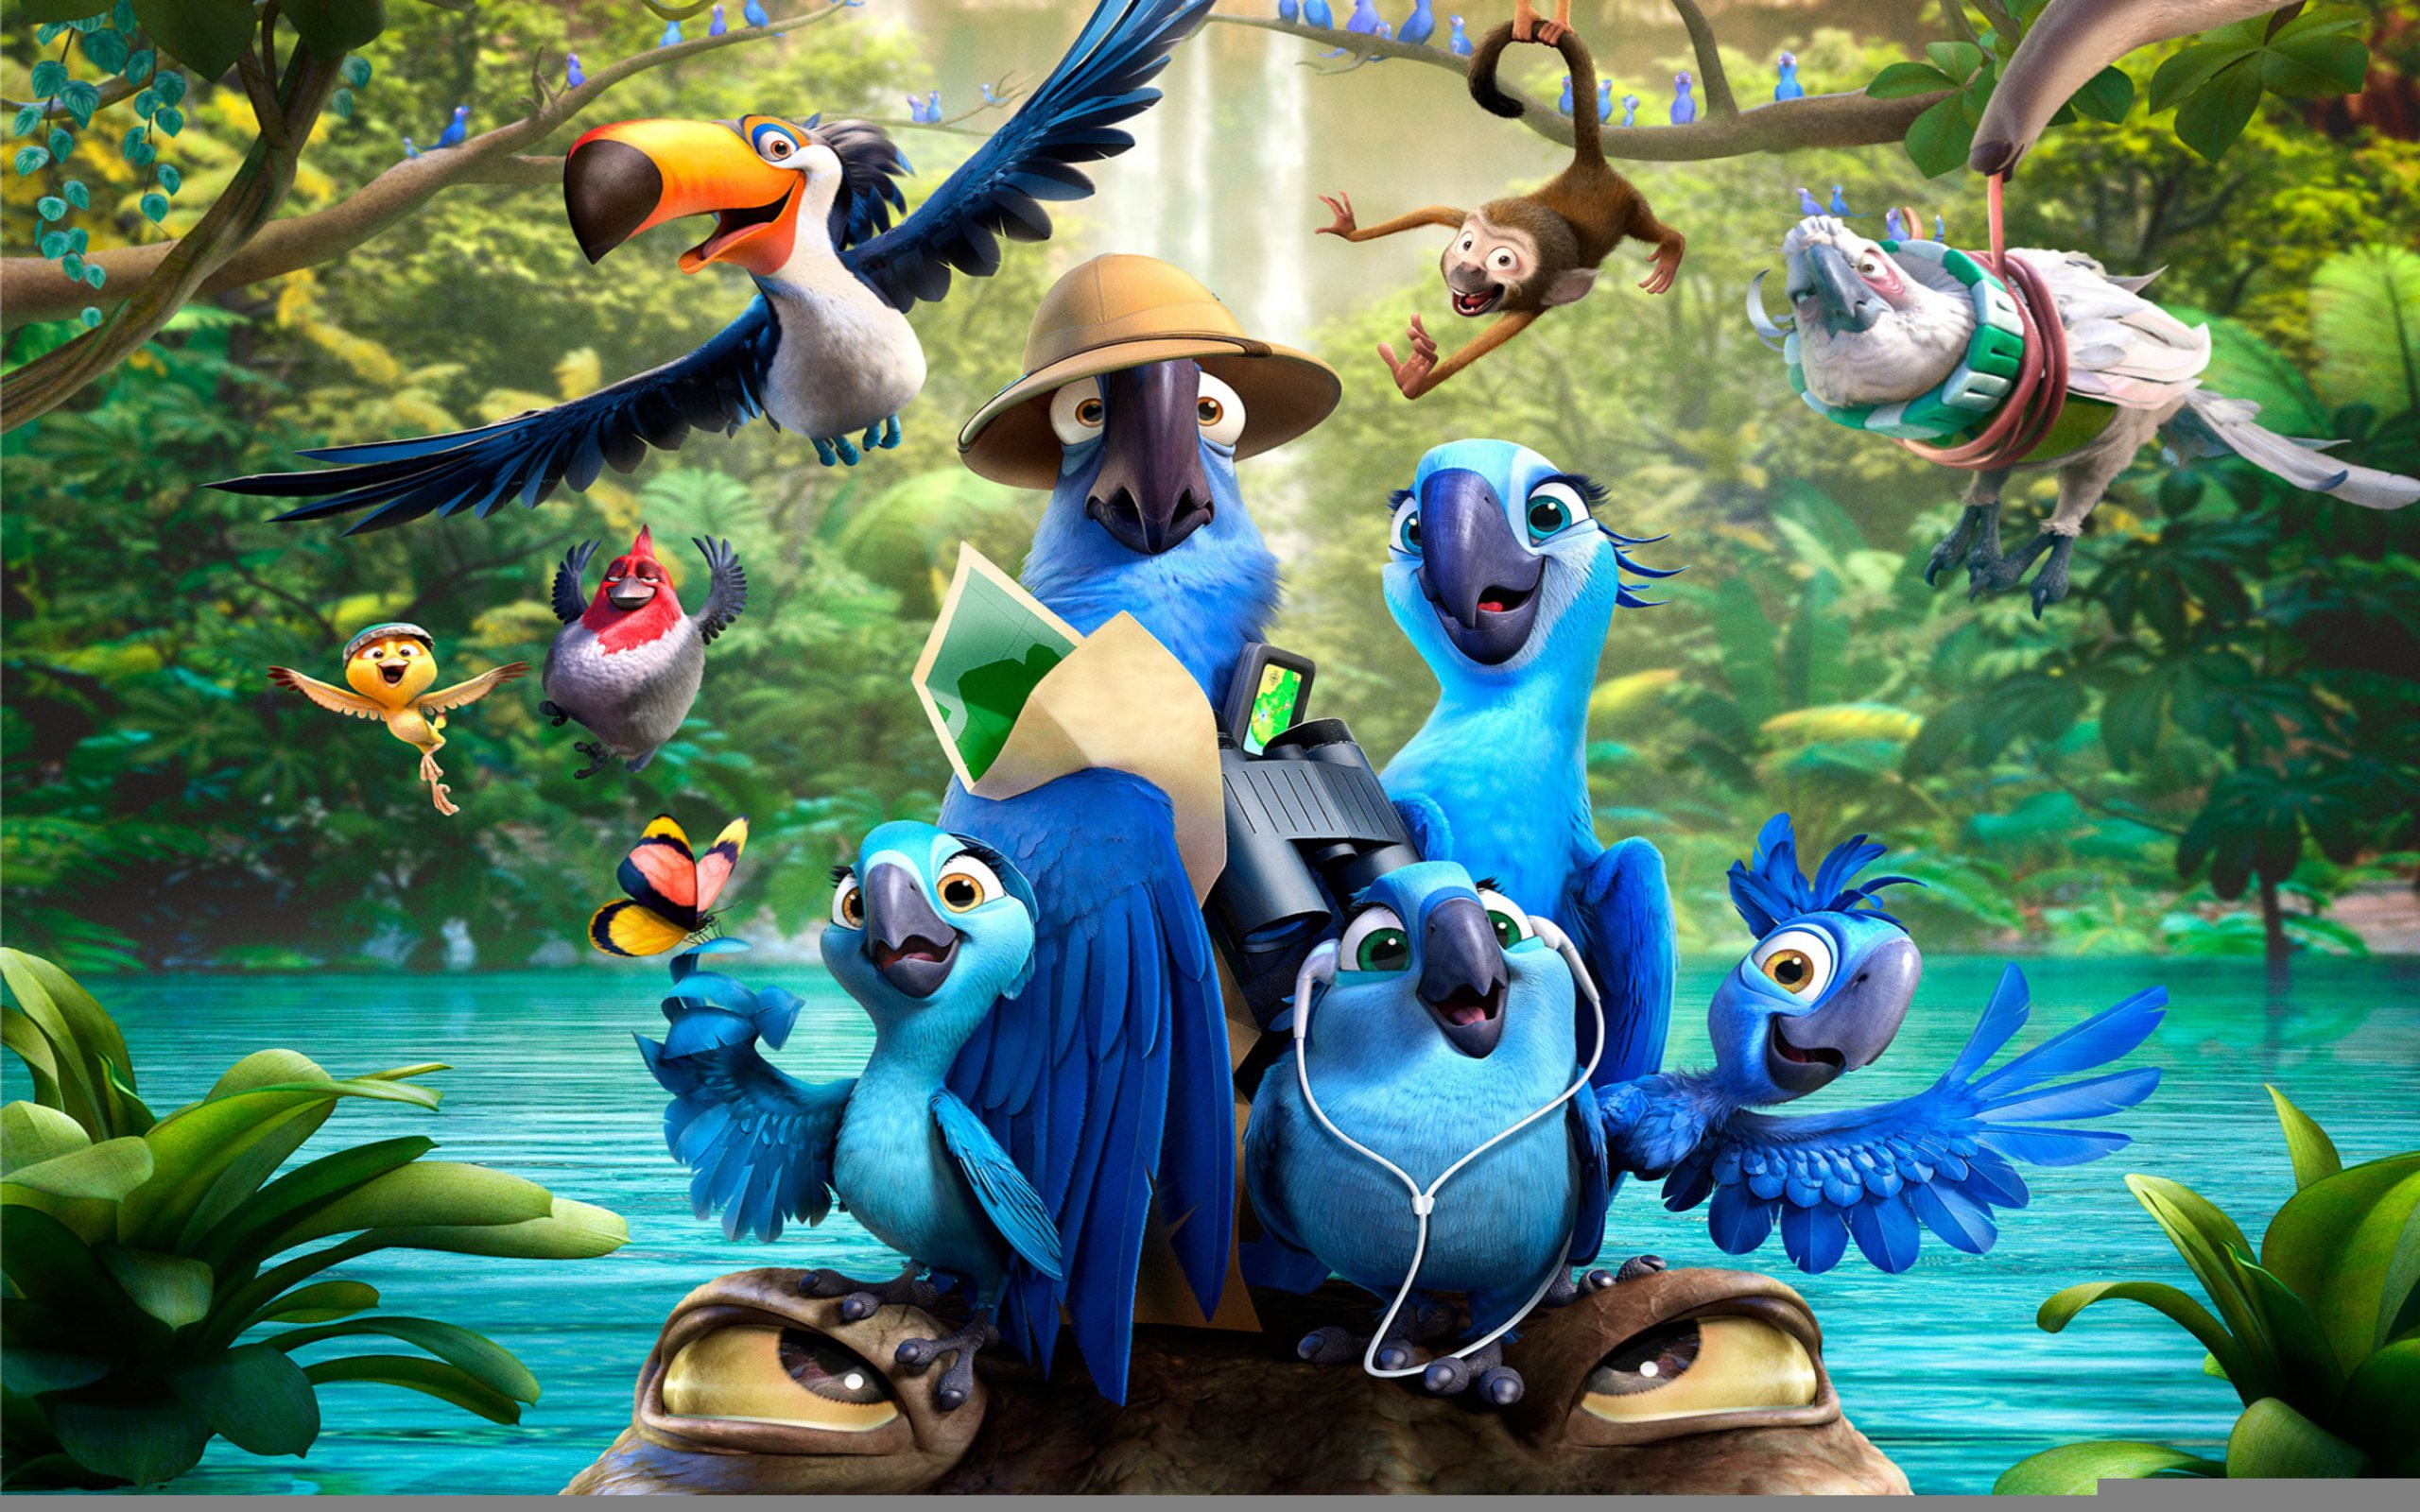 Rio 2 Cartoon Movie